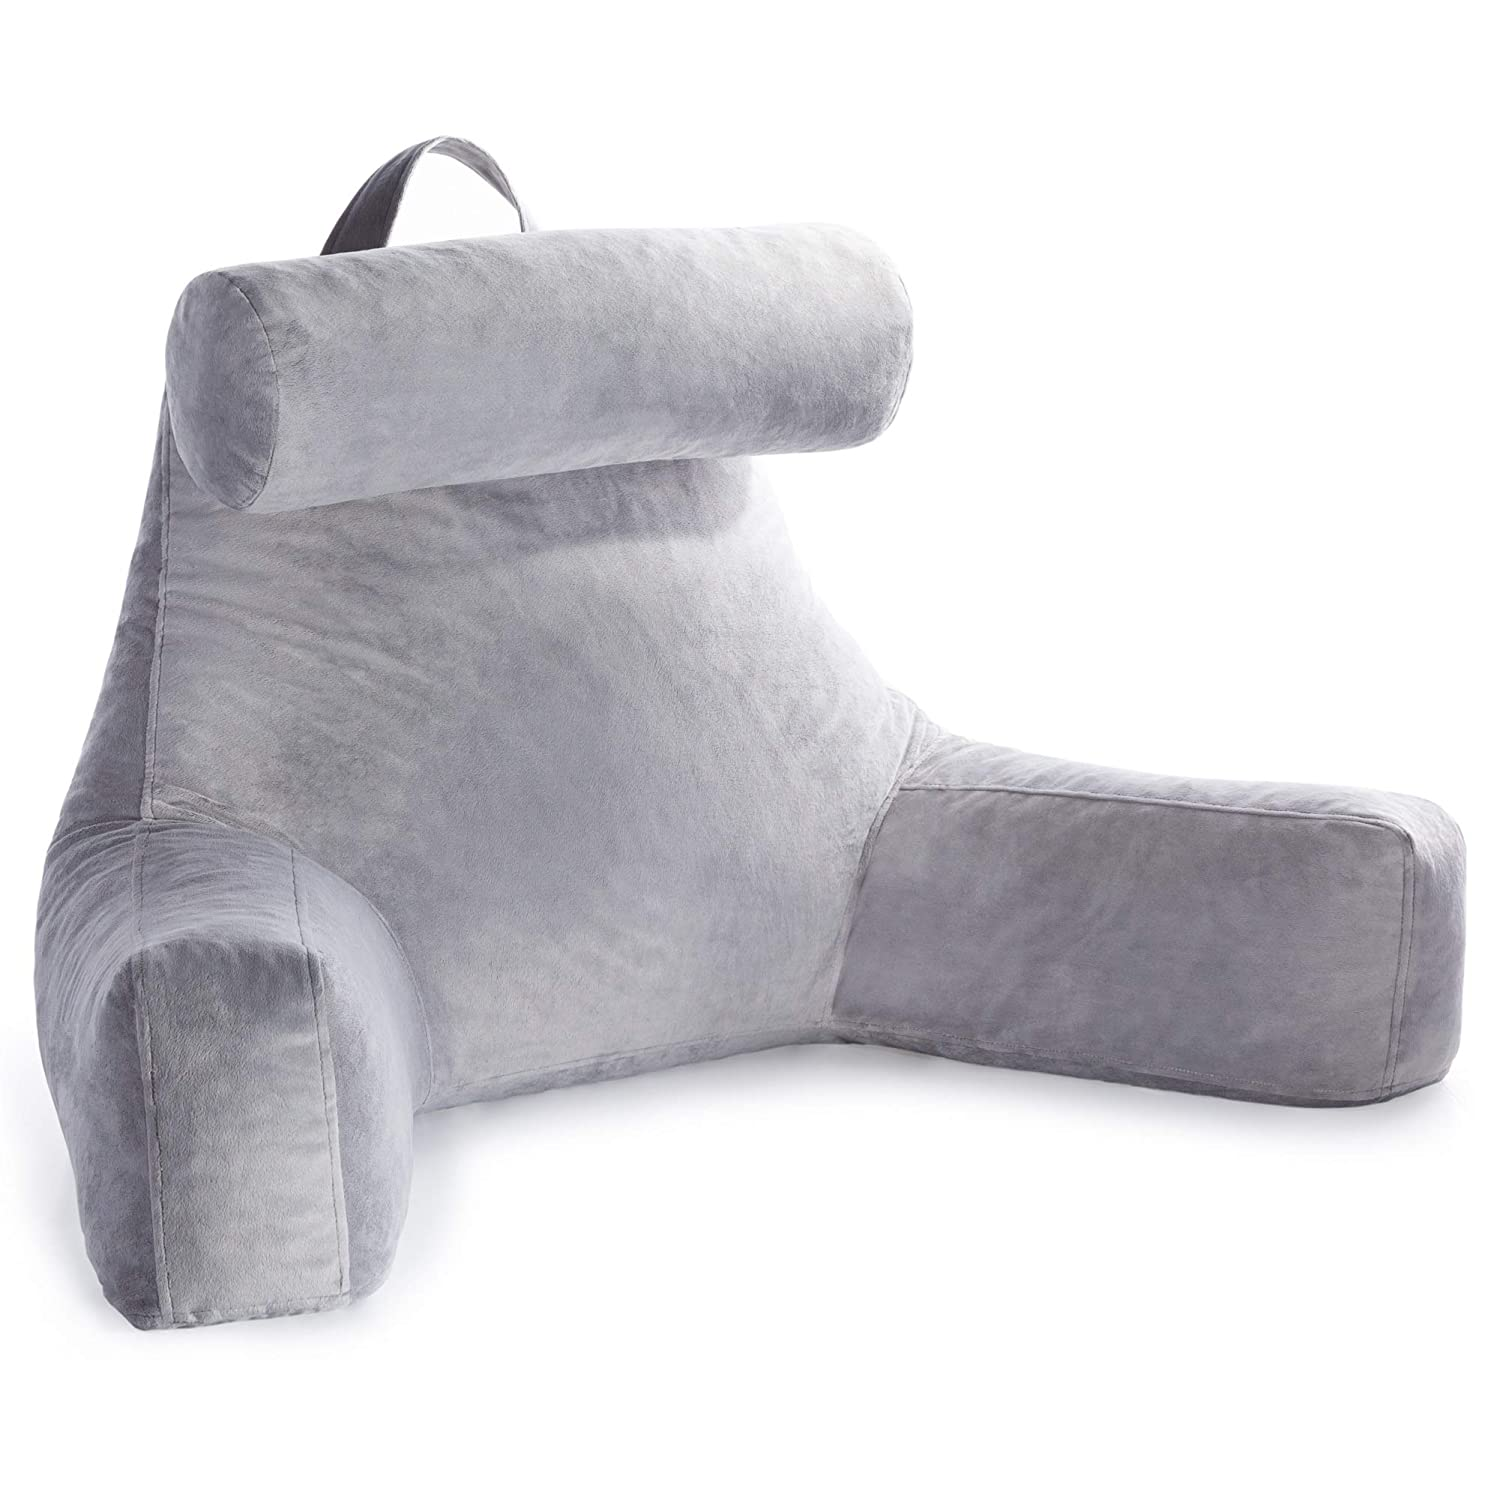 Linenspa Shredded Foam Reading Pillow with Neck Support - Extra Large Design for Adults - Perfect for Back Support While Relaxing, Gaming, Reading, or Watching TV - Soft Velour Cover